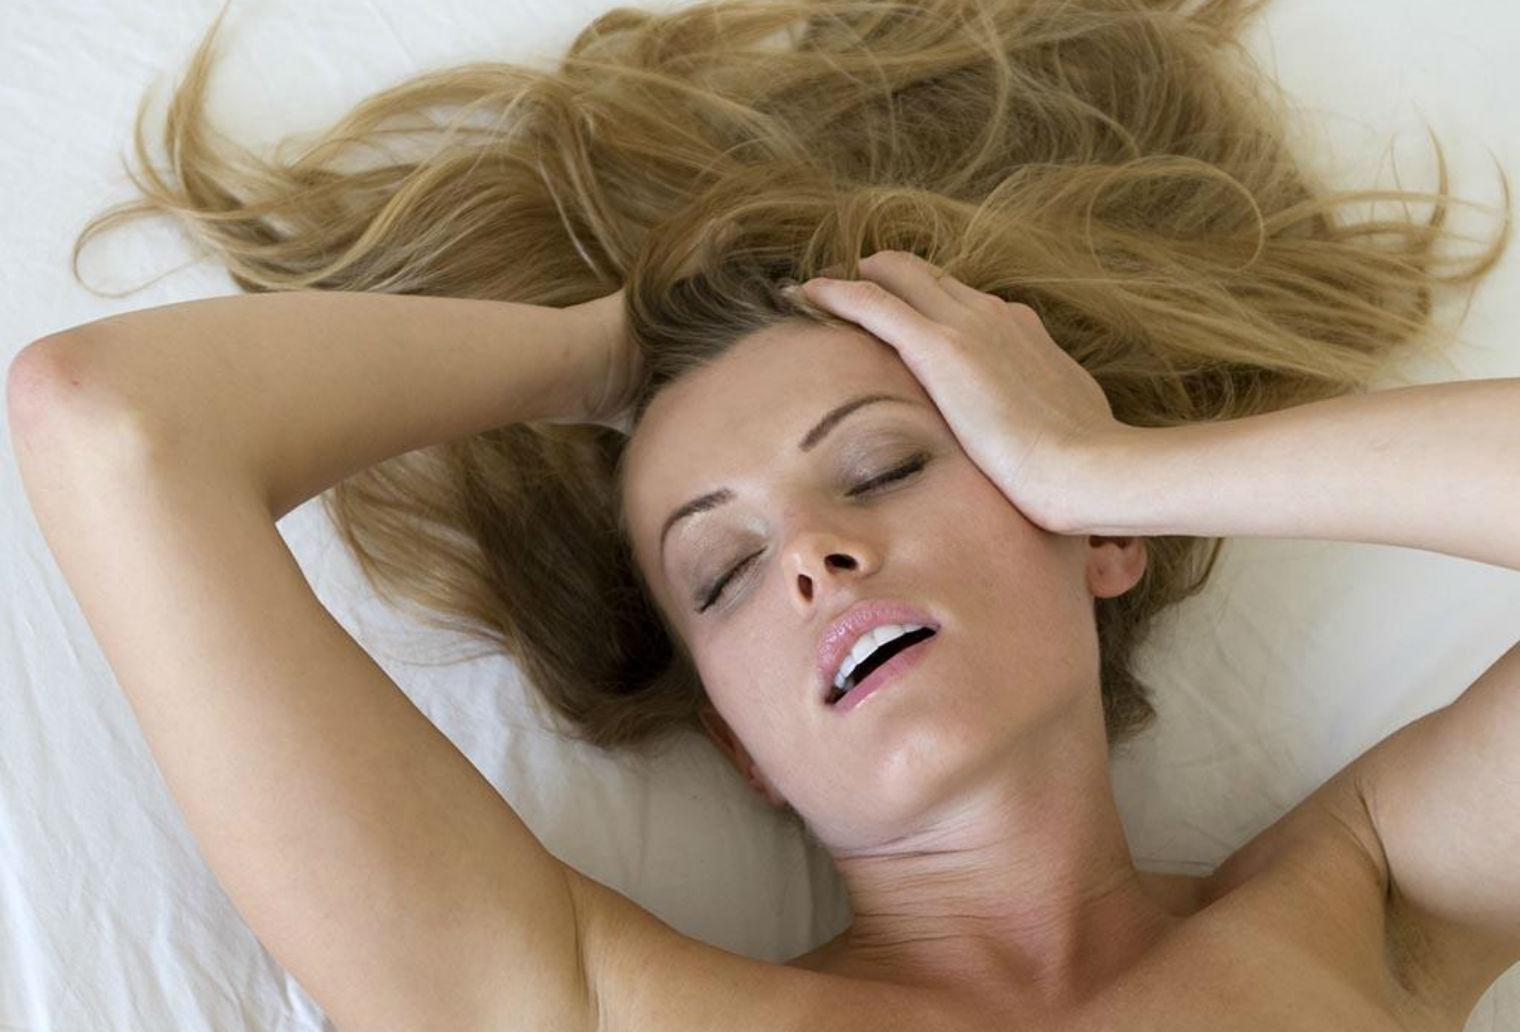 We asked women to share exactly what they do to orgasm